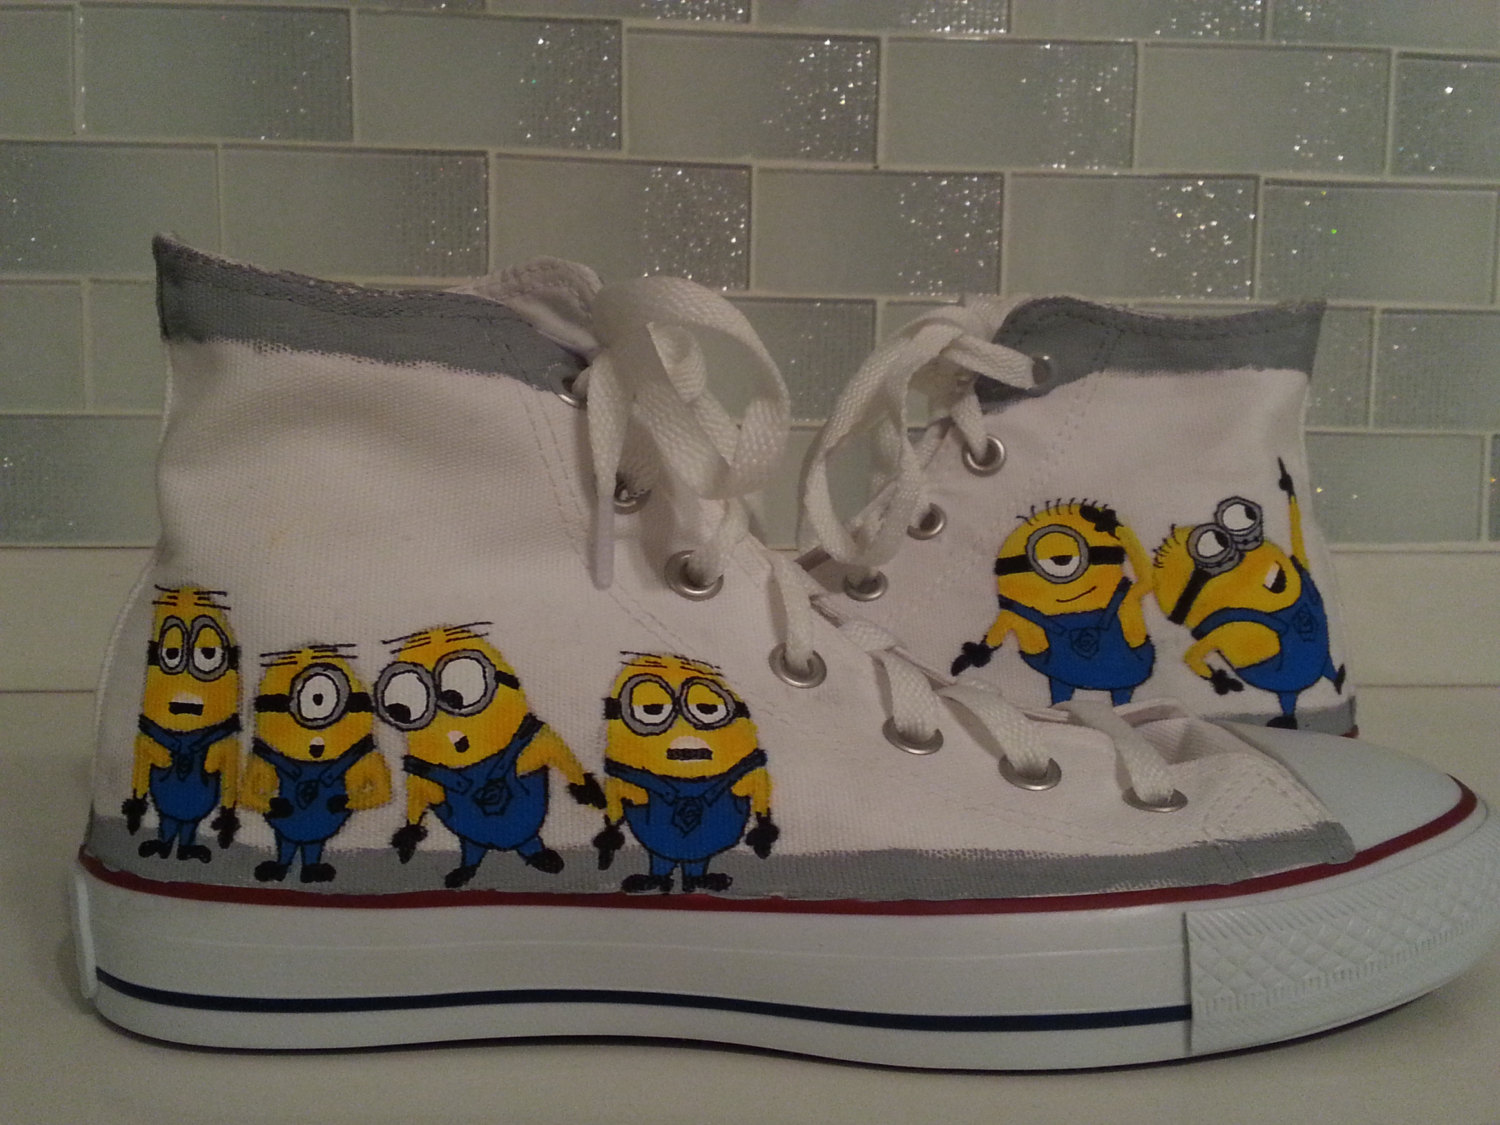 Minion painted shoes, custom converse for fans and cosplayers